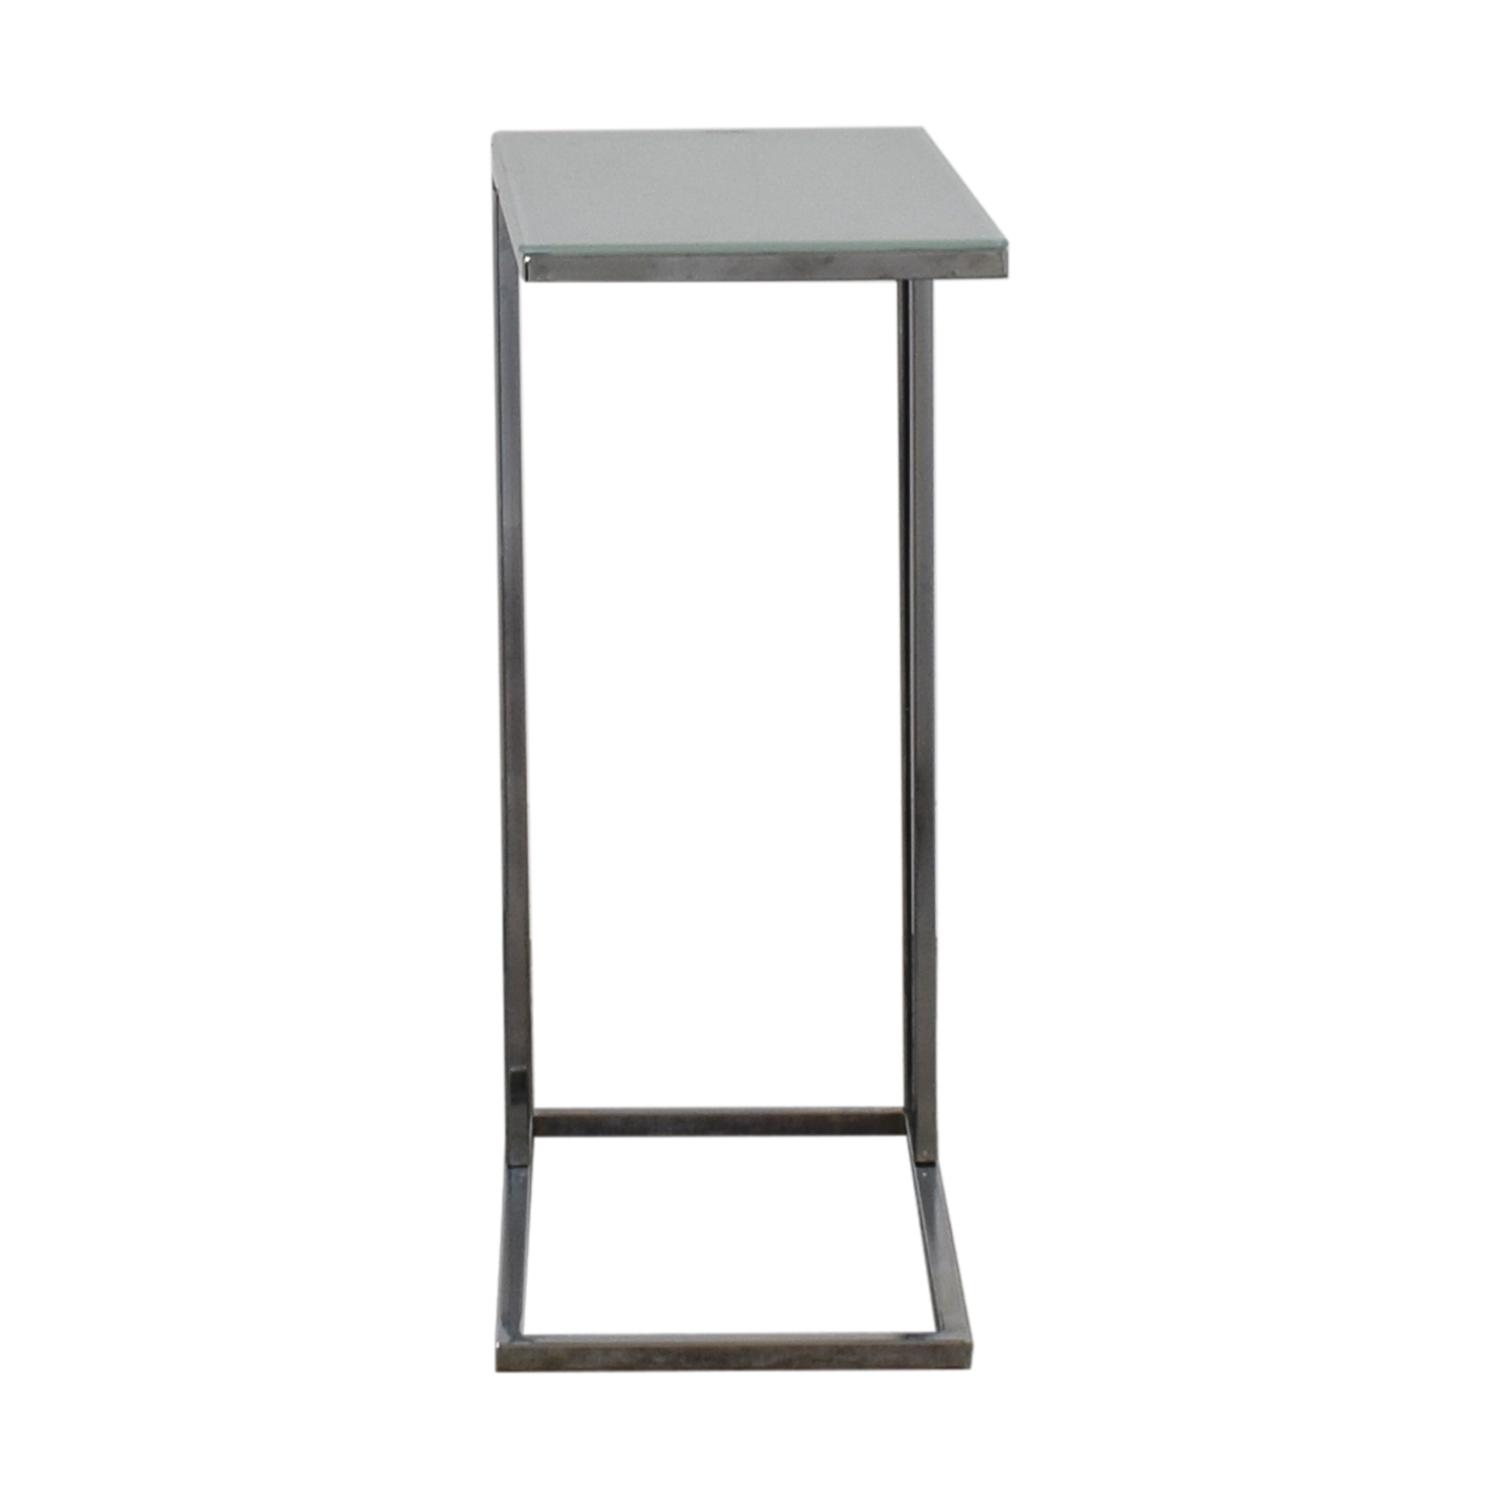 Shaded Glass and Chrome L Side Table dimensions